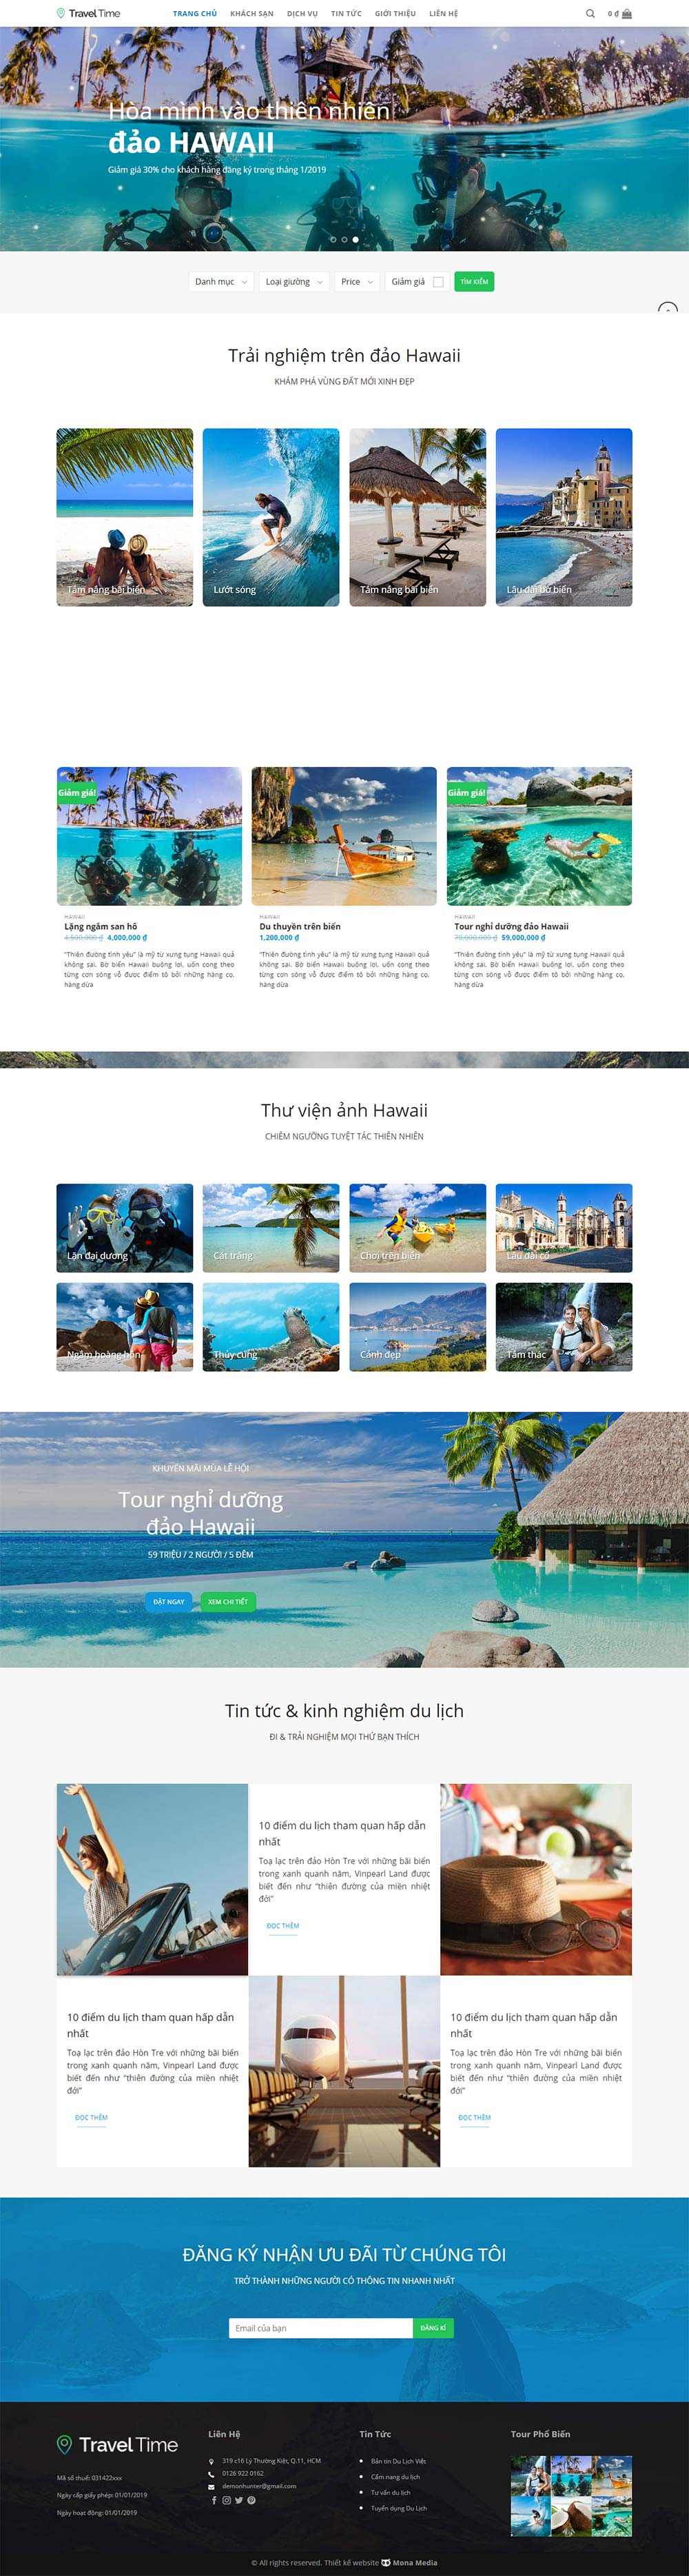 Mẫu website du lịch Travel Time